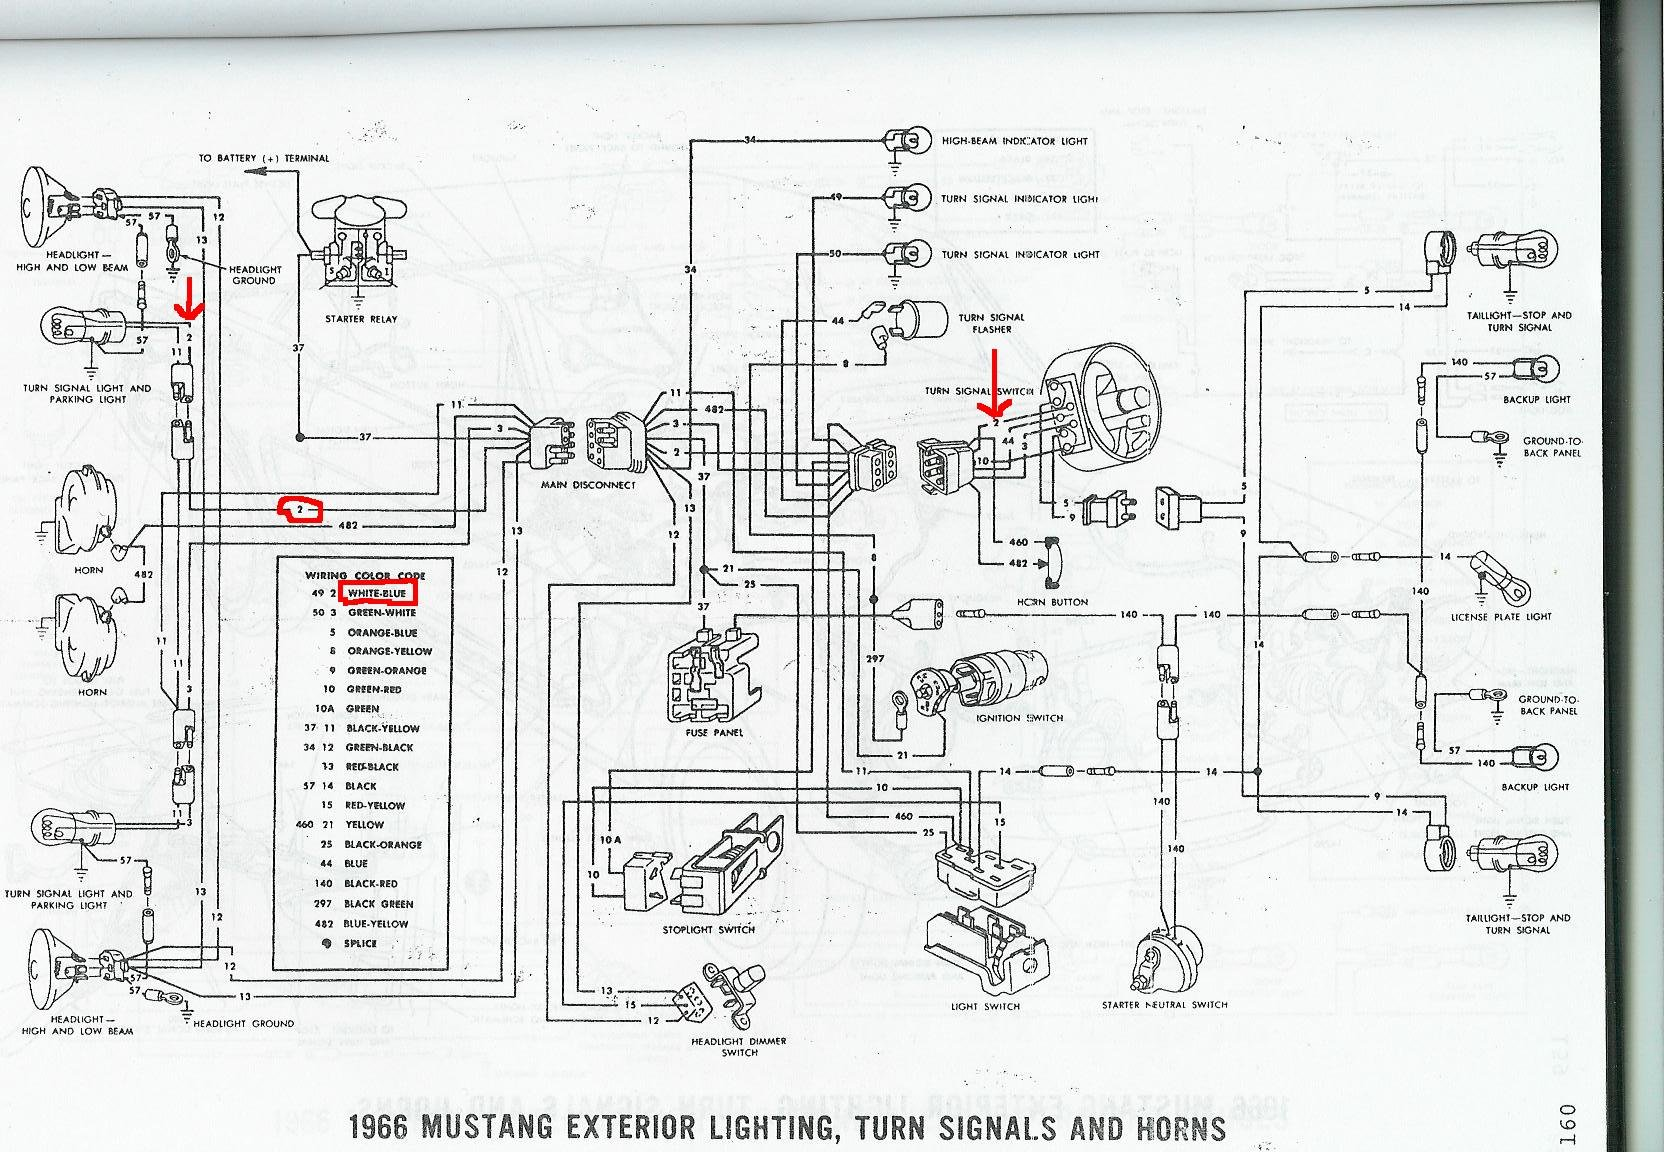 70 Corvette Wiring Diagram | Control Cables & Wiring Diagram on ford taurus fan wiring, ford wiper parts, ford ignition switch wiring, ford upfitter wiring, ford turn signal switch wiring, ford relay wiring, ford alternator wiring, ford dimmer switch wiring, ford clutch master cylinder wiring, ford wiper switch, ford wiper diagram, ford engine wiring, ford neutral safety switch wiring, ford trailer brake controller wiring, ford starter wiring, ford clock wiring, ford distributor wiring, ford fuel sending unit wiring, ford coil wiring, ford fuel pump wiring,